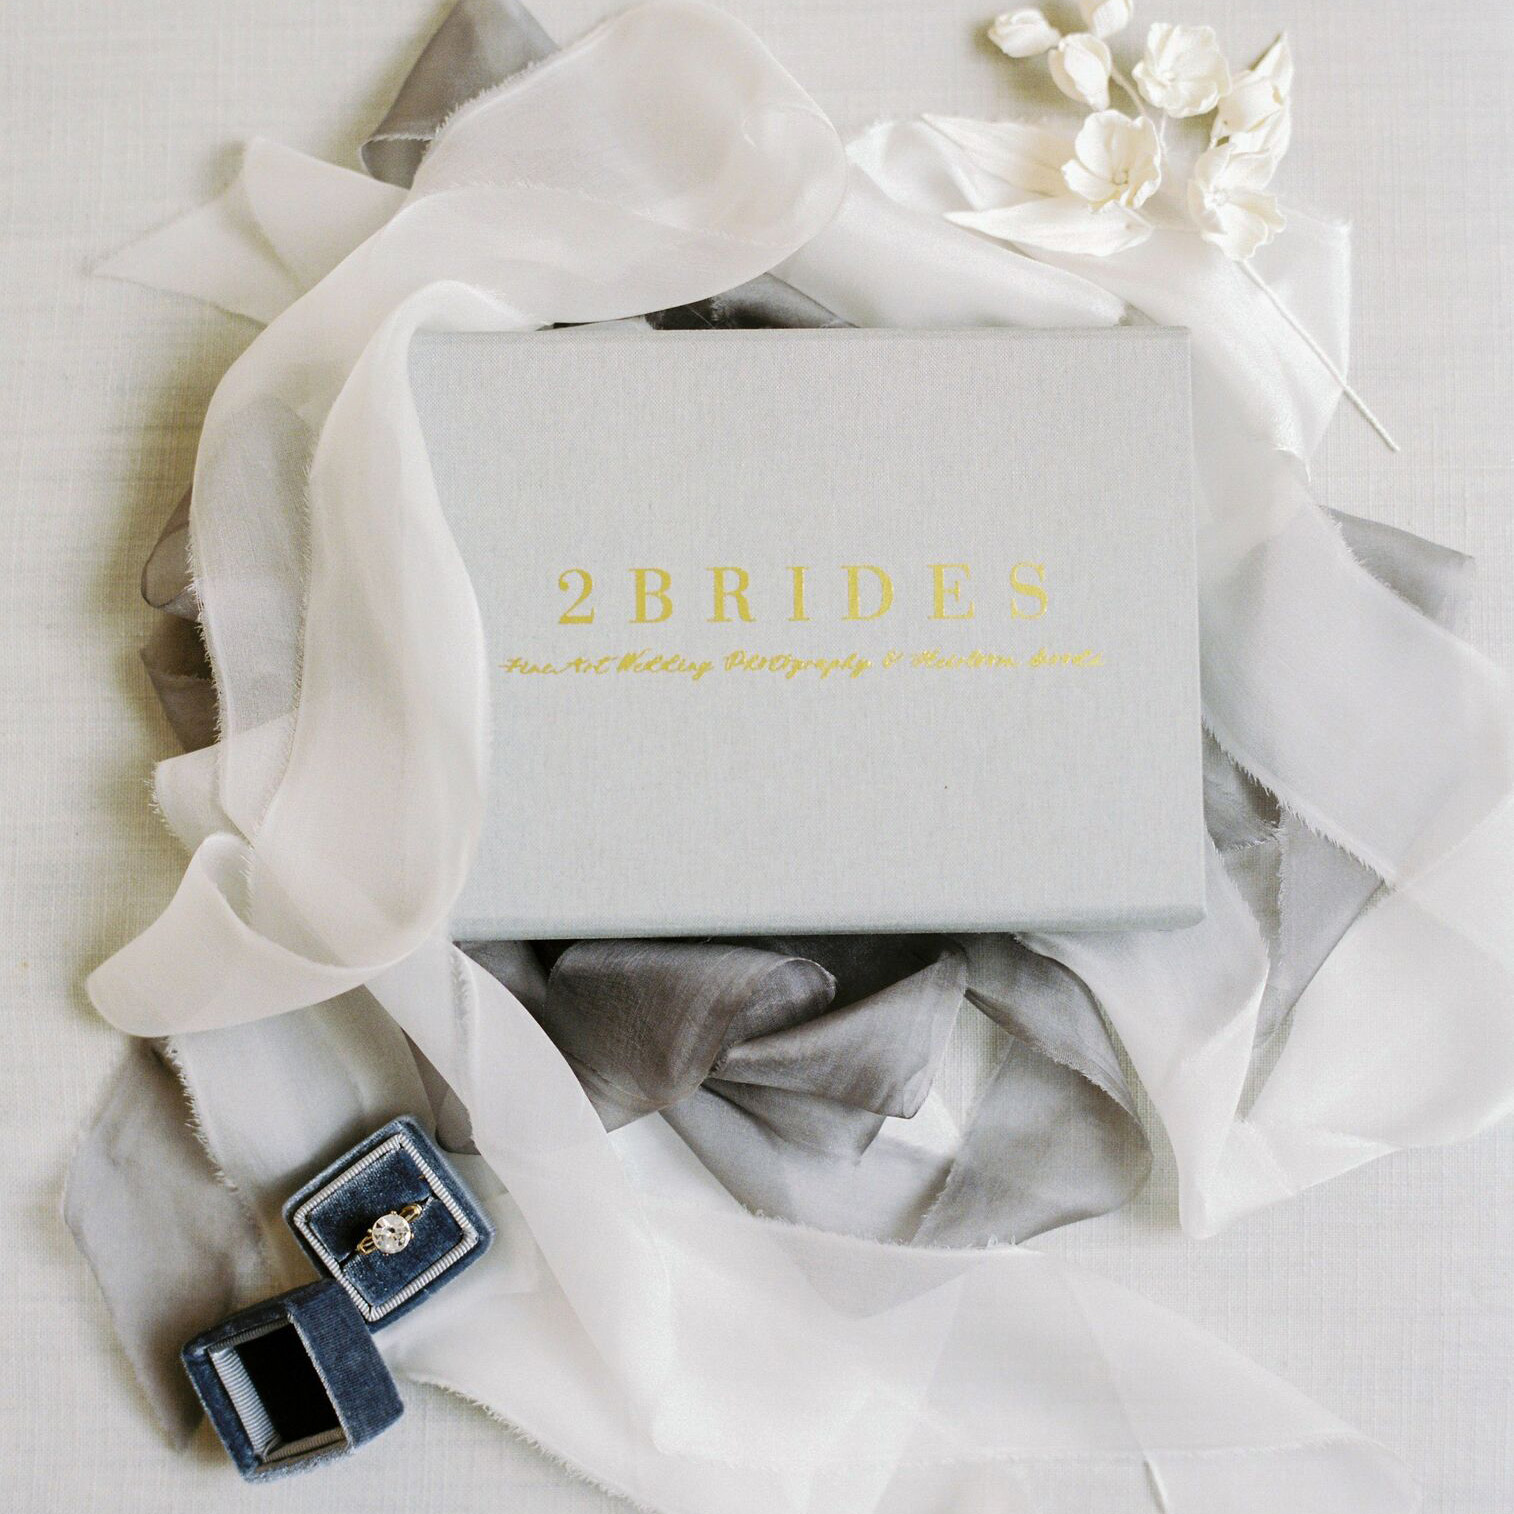 aa2 Brides Photography Album Studio Samples_01_preview.jpg